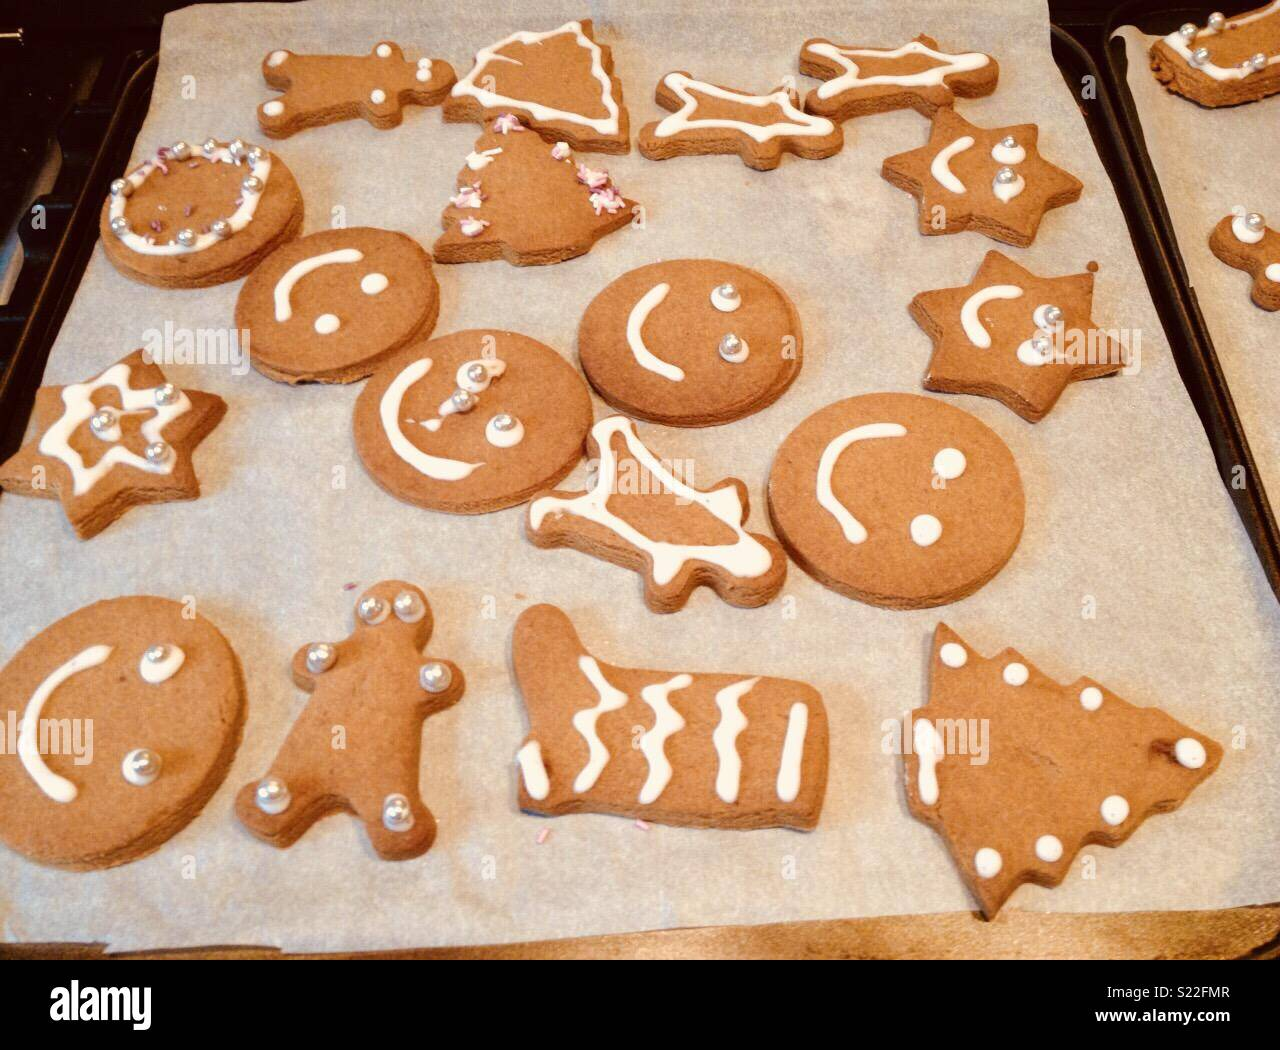 Homemade Christmas Biscuits On A Baking Sheet Stock Photo 311072183